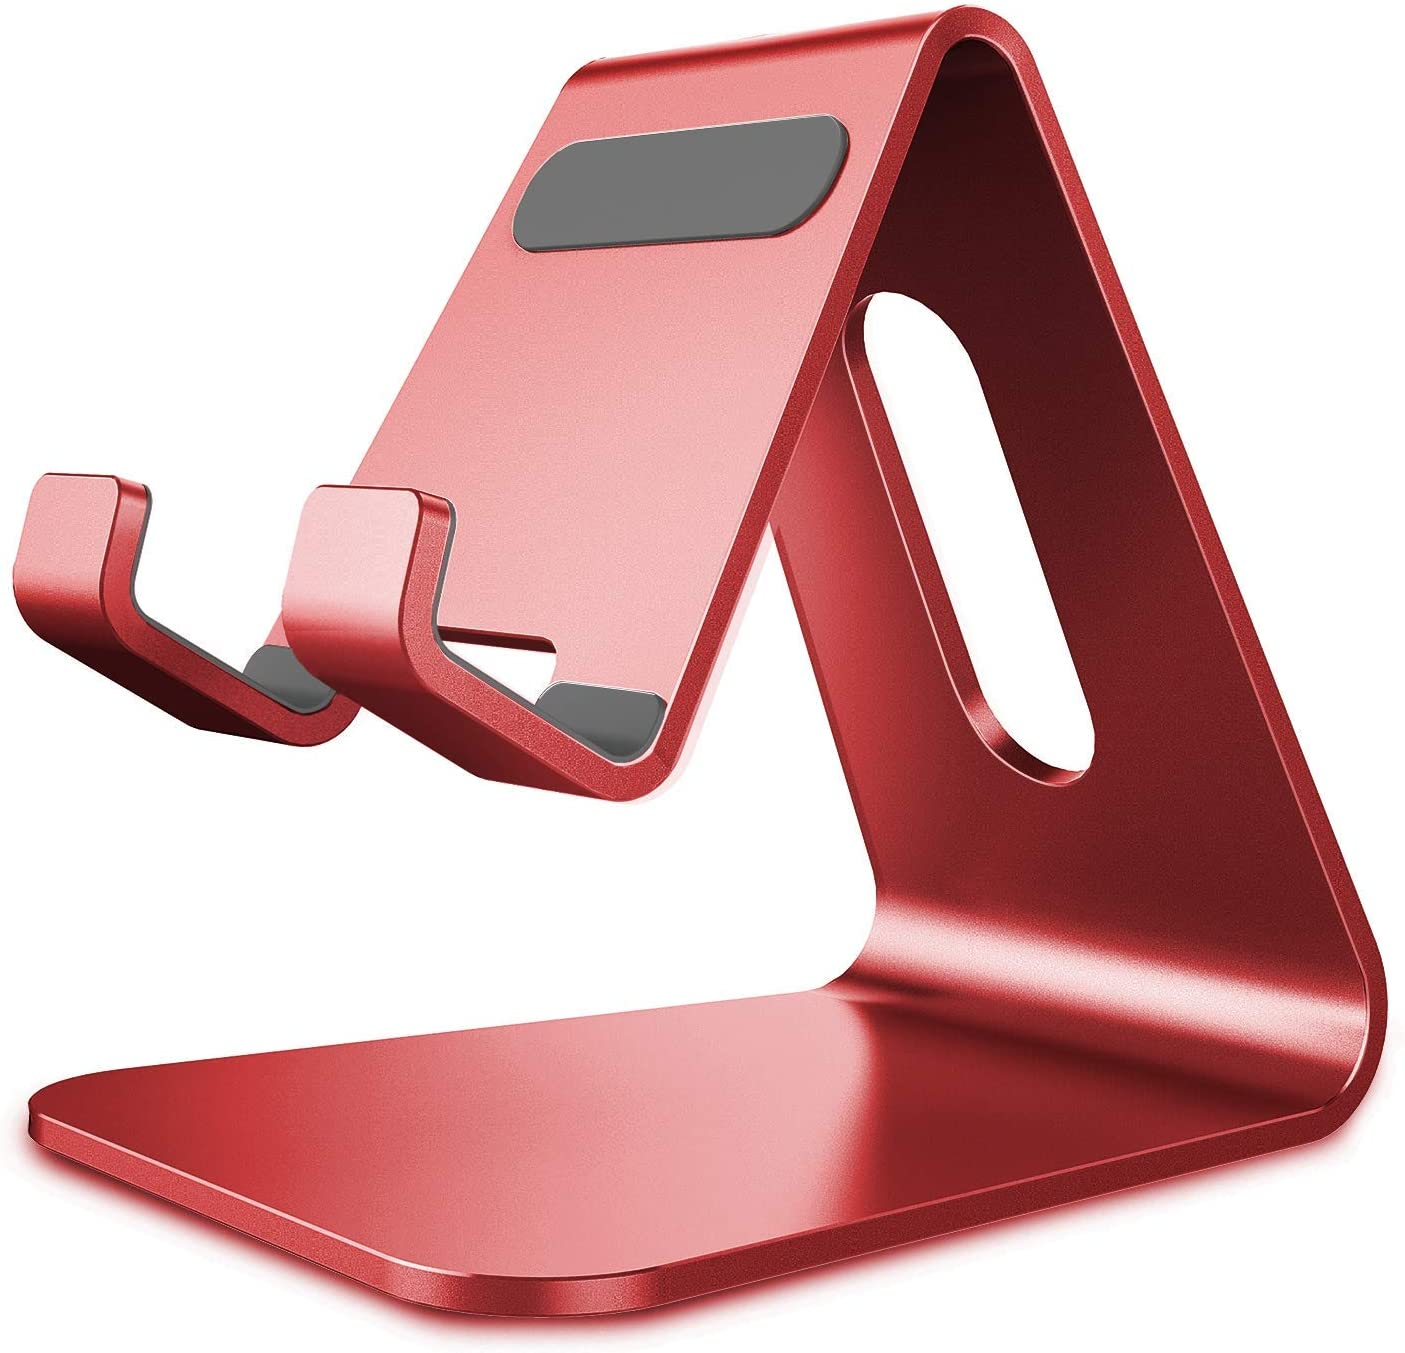 CreaDream Cell Phone Stand, Cradle, Holder,Aluminum Desktop Stand Compatible with Switch, All Smart Phone, iPhone 11 Pro Xs Max Xr X Se 8 7 6 6s Plus SE 5 5s (Red)